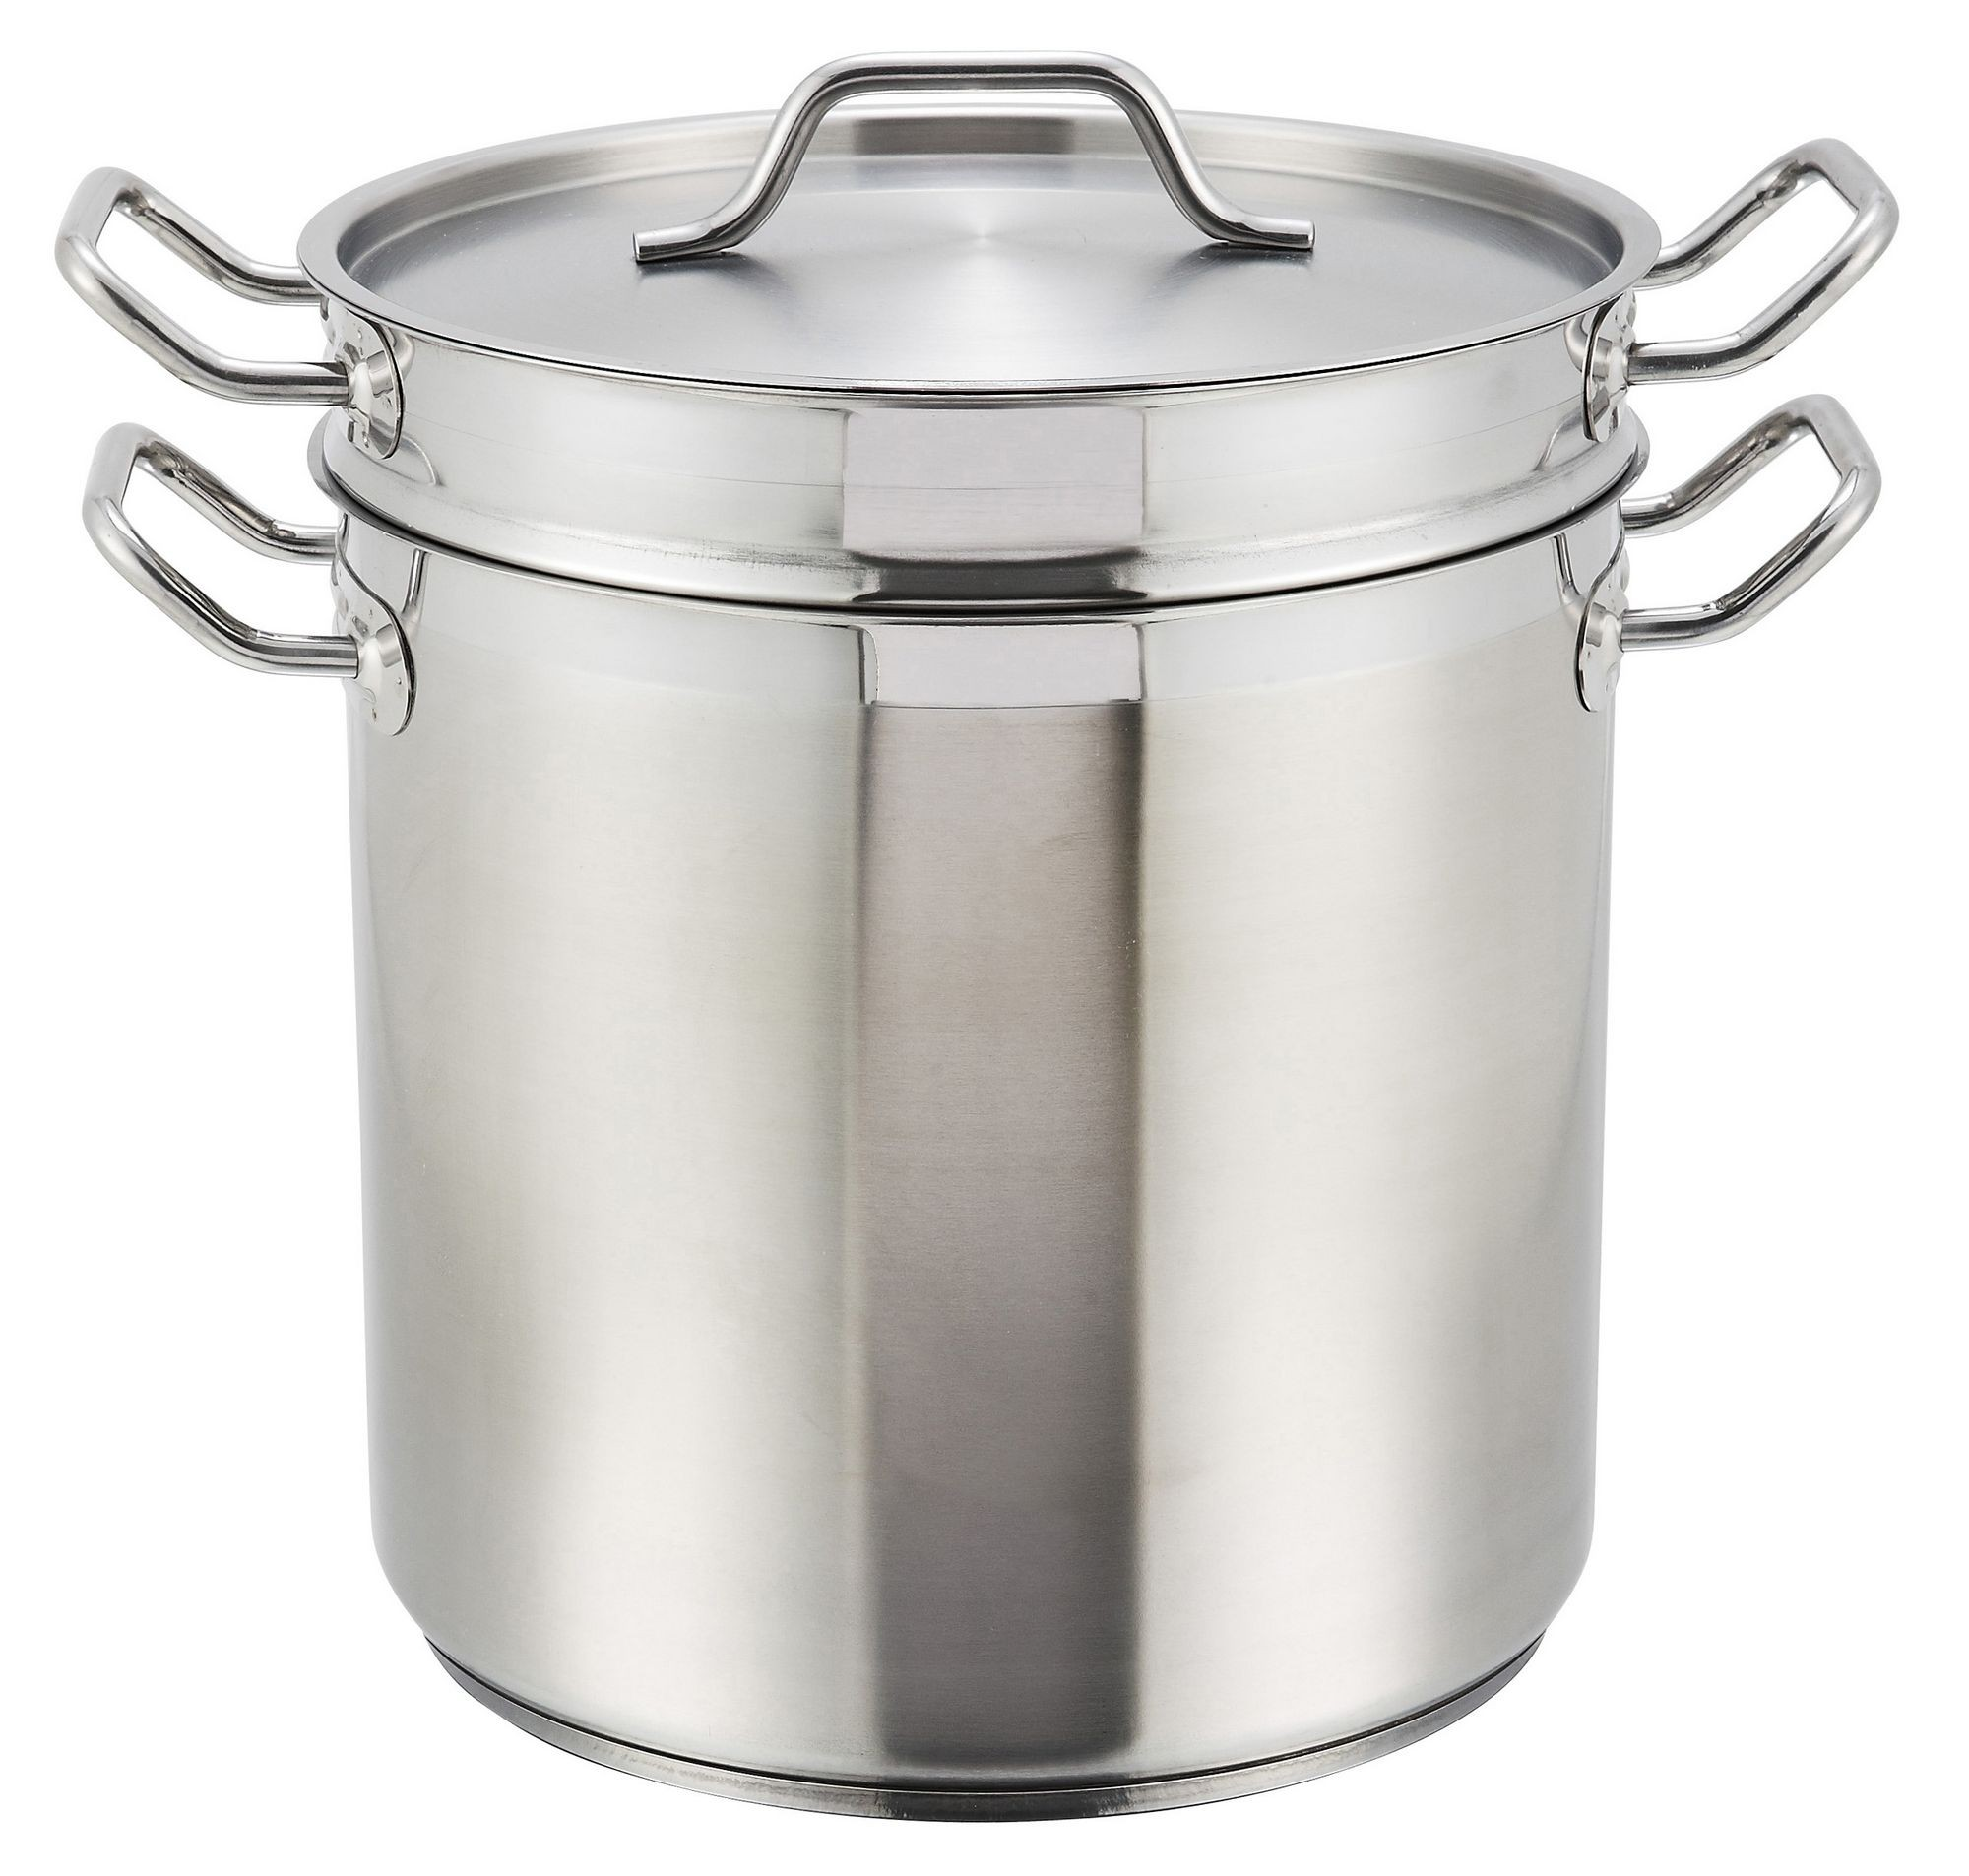 Winco SSDB-12 Stainless Steel 12 Qt. Double Boiler with Cover